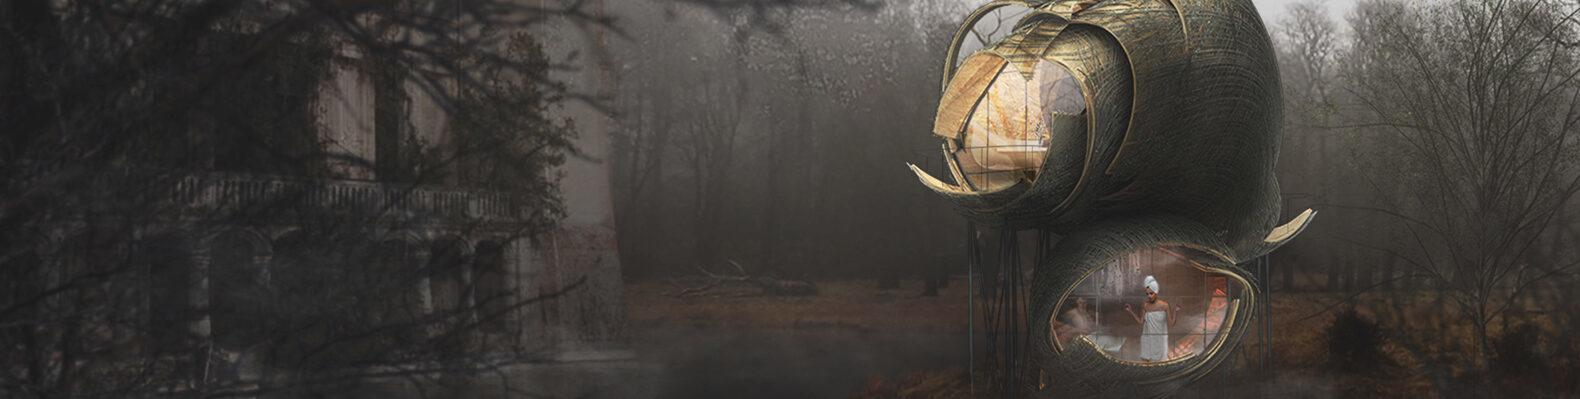 wood, round treehouse in dark forest rendering